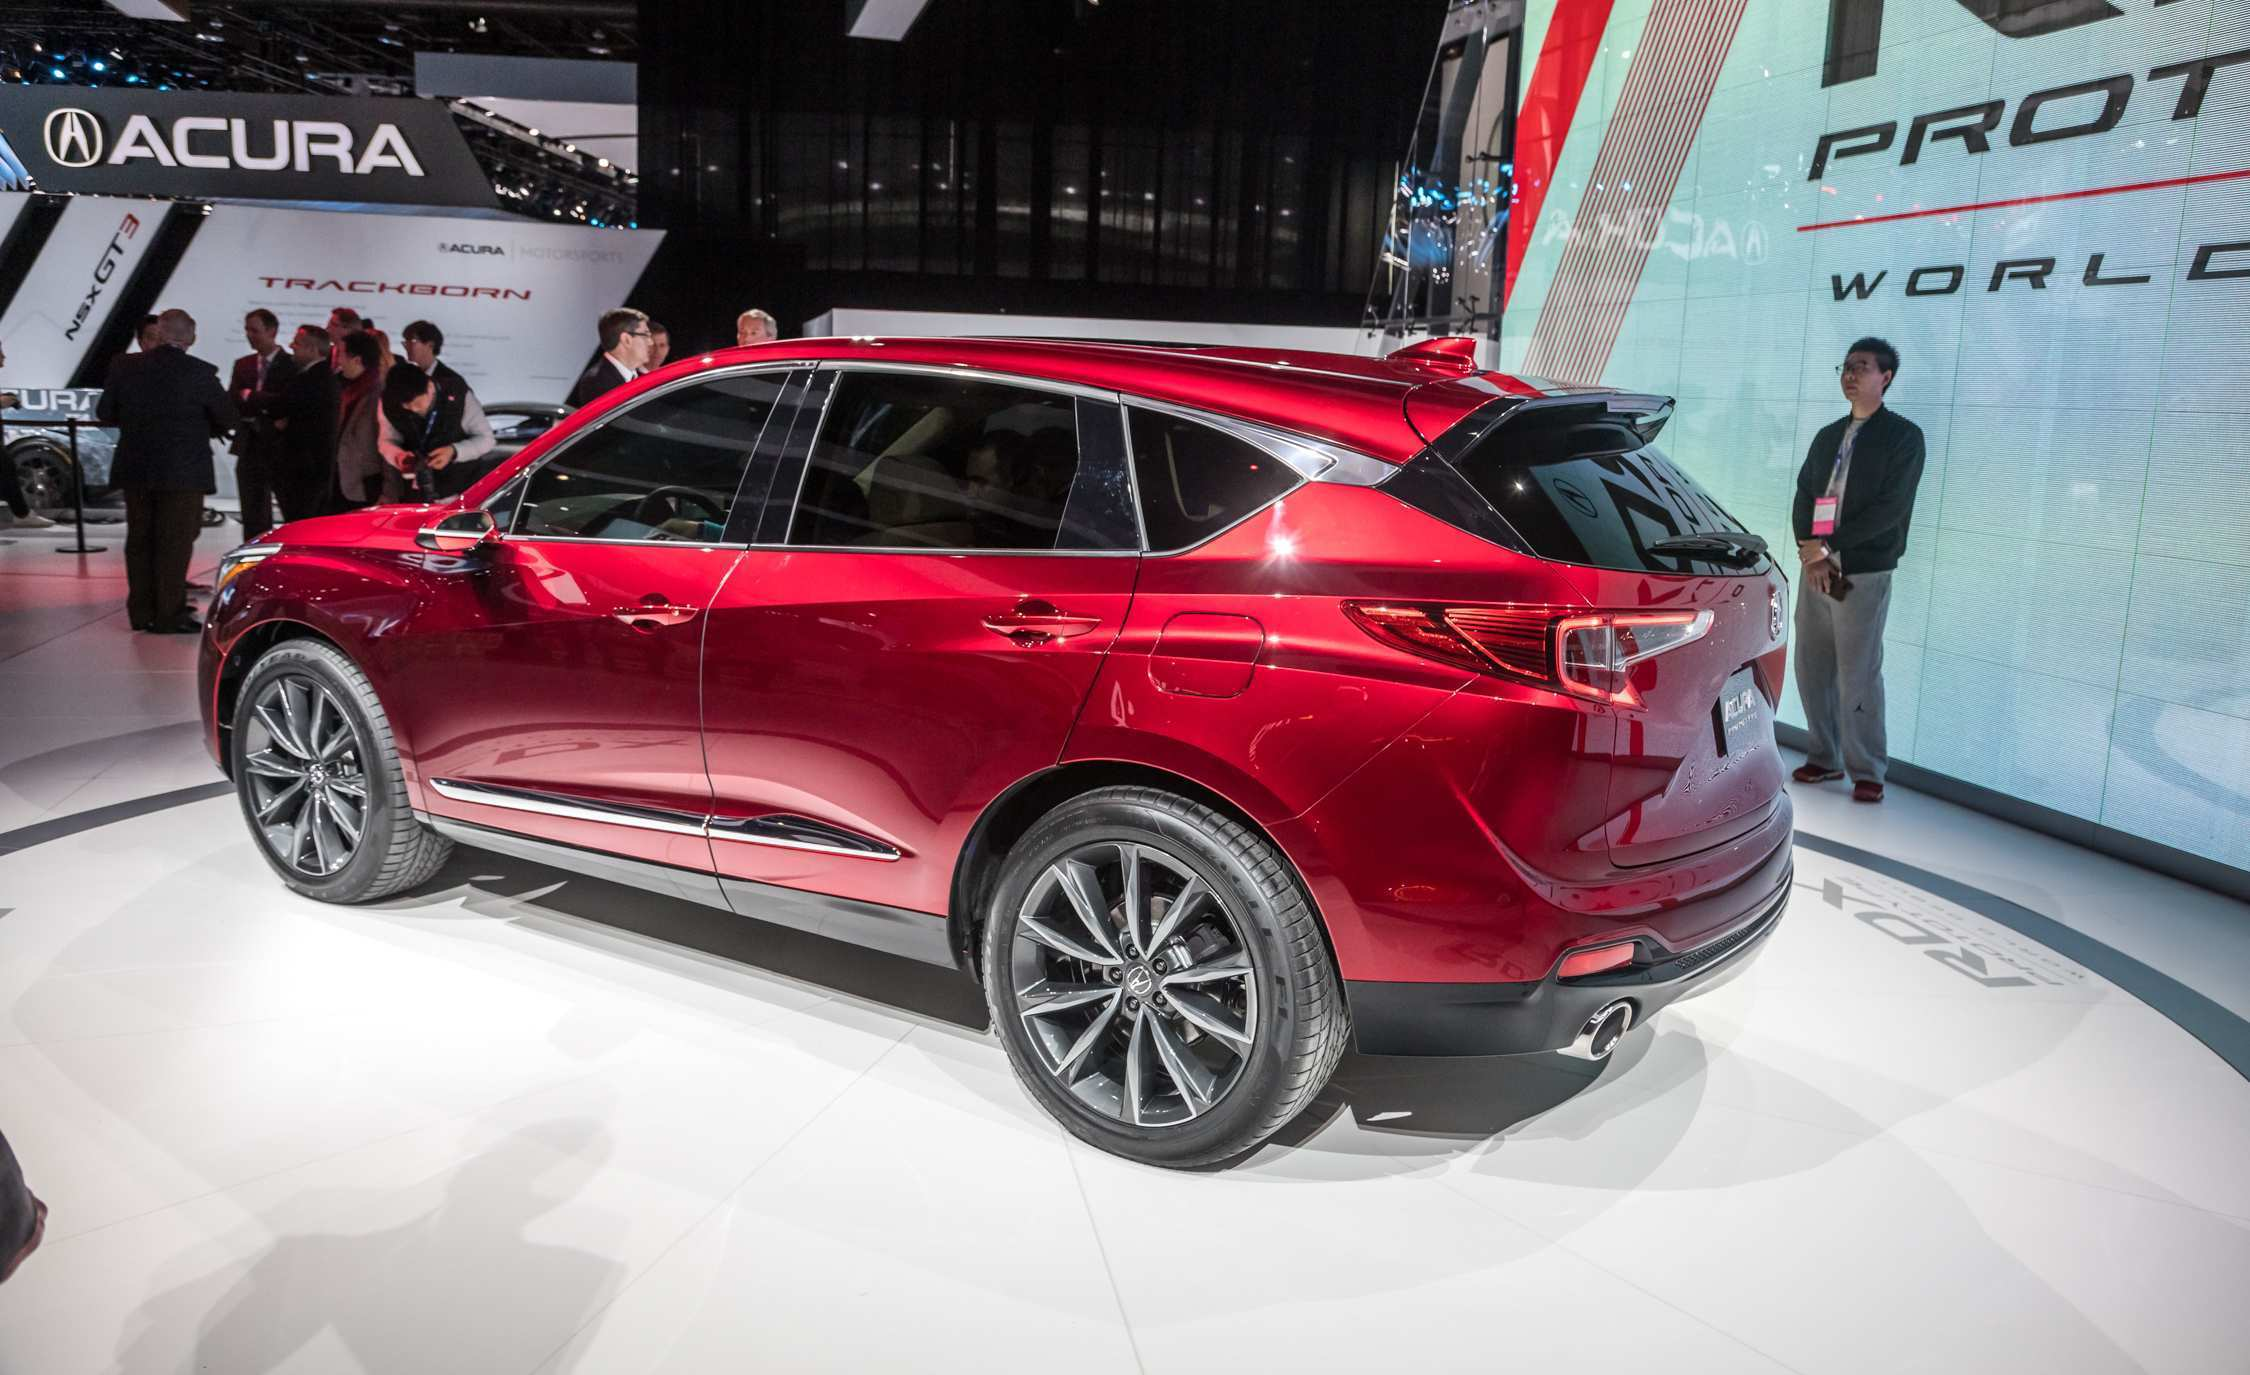 97 Best Review 2019 Acura Rdx Release Date Images with 2019 Acura Rdx Release Date